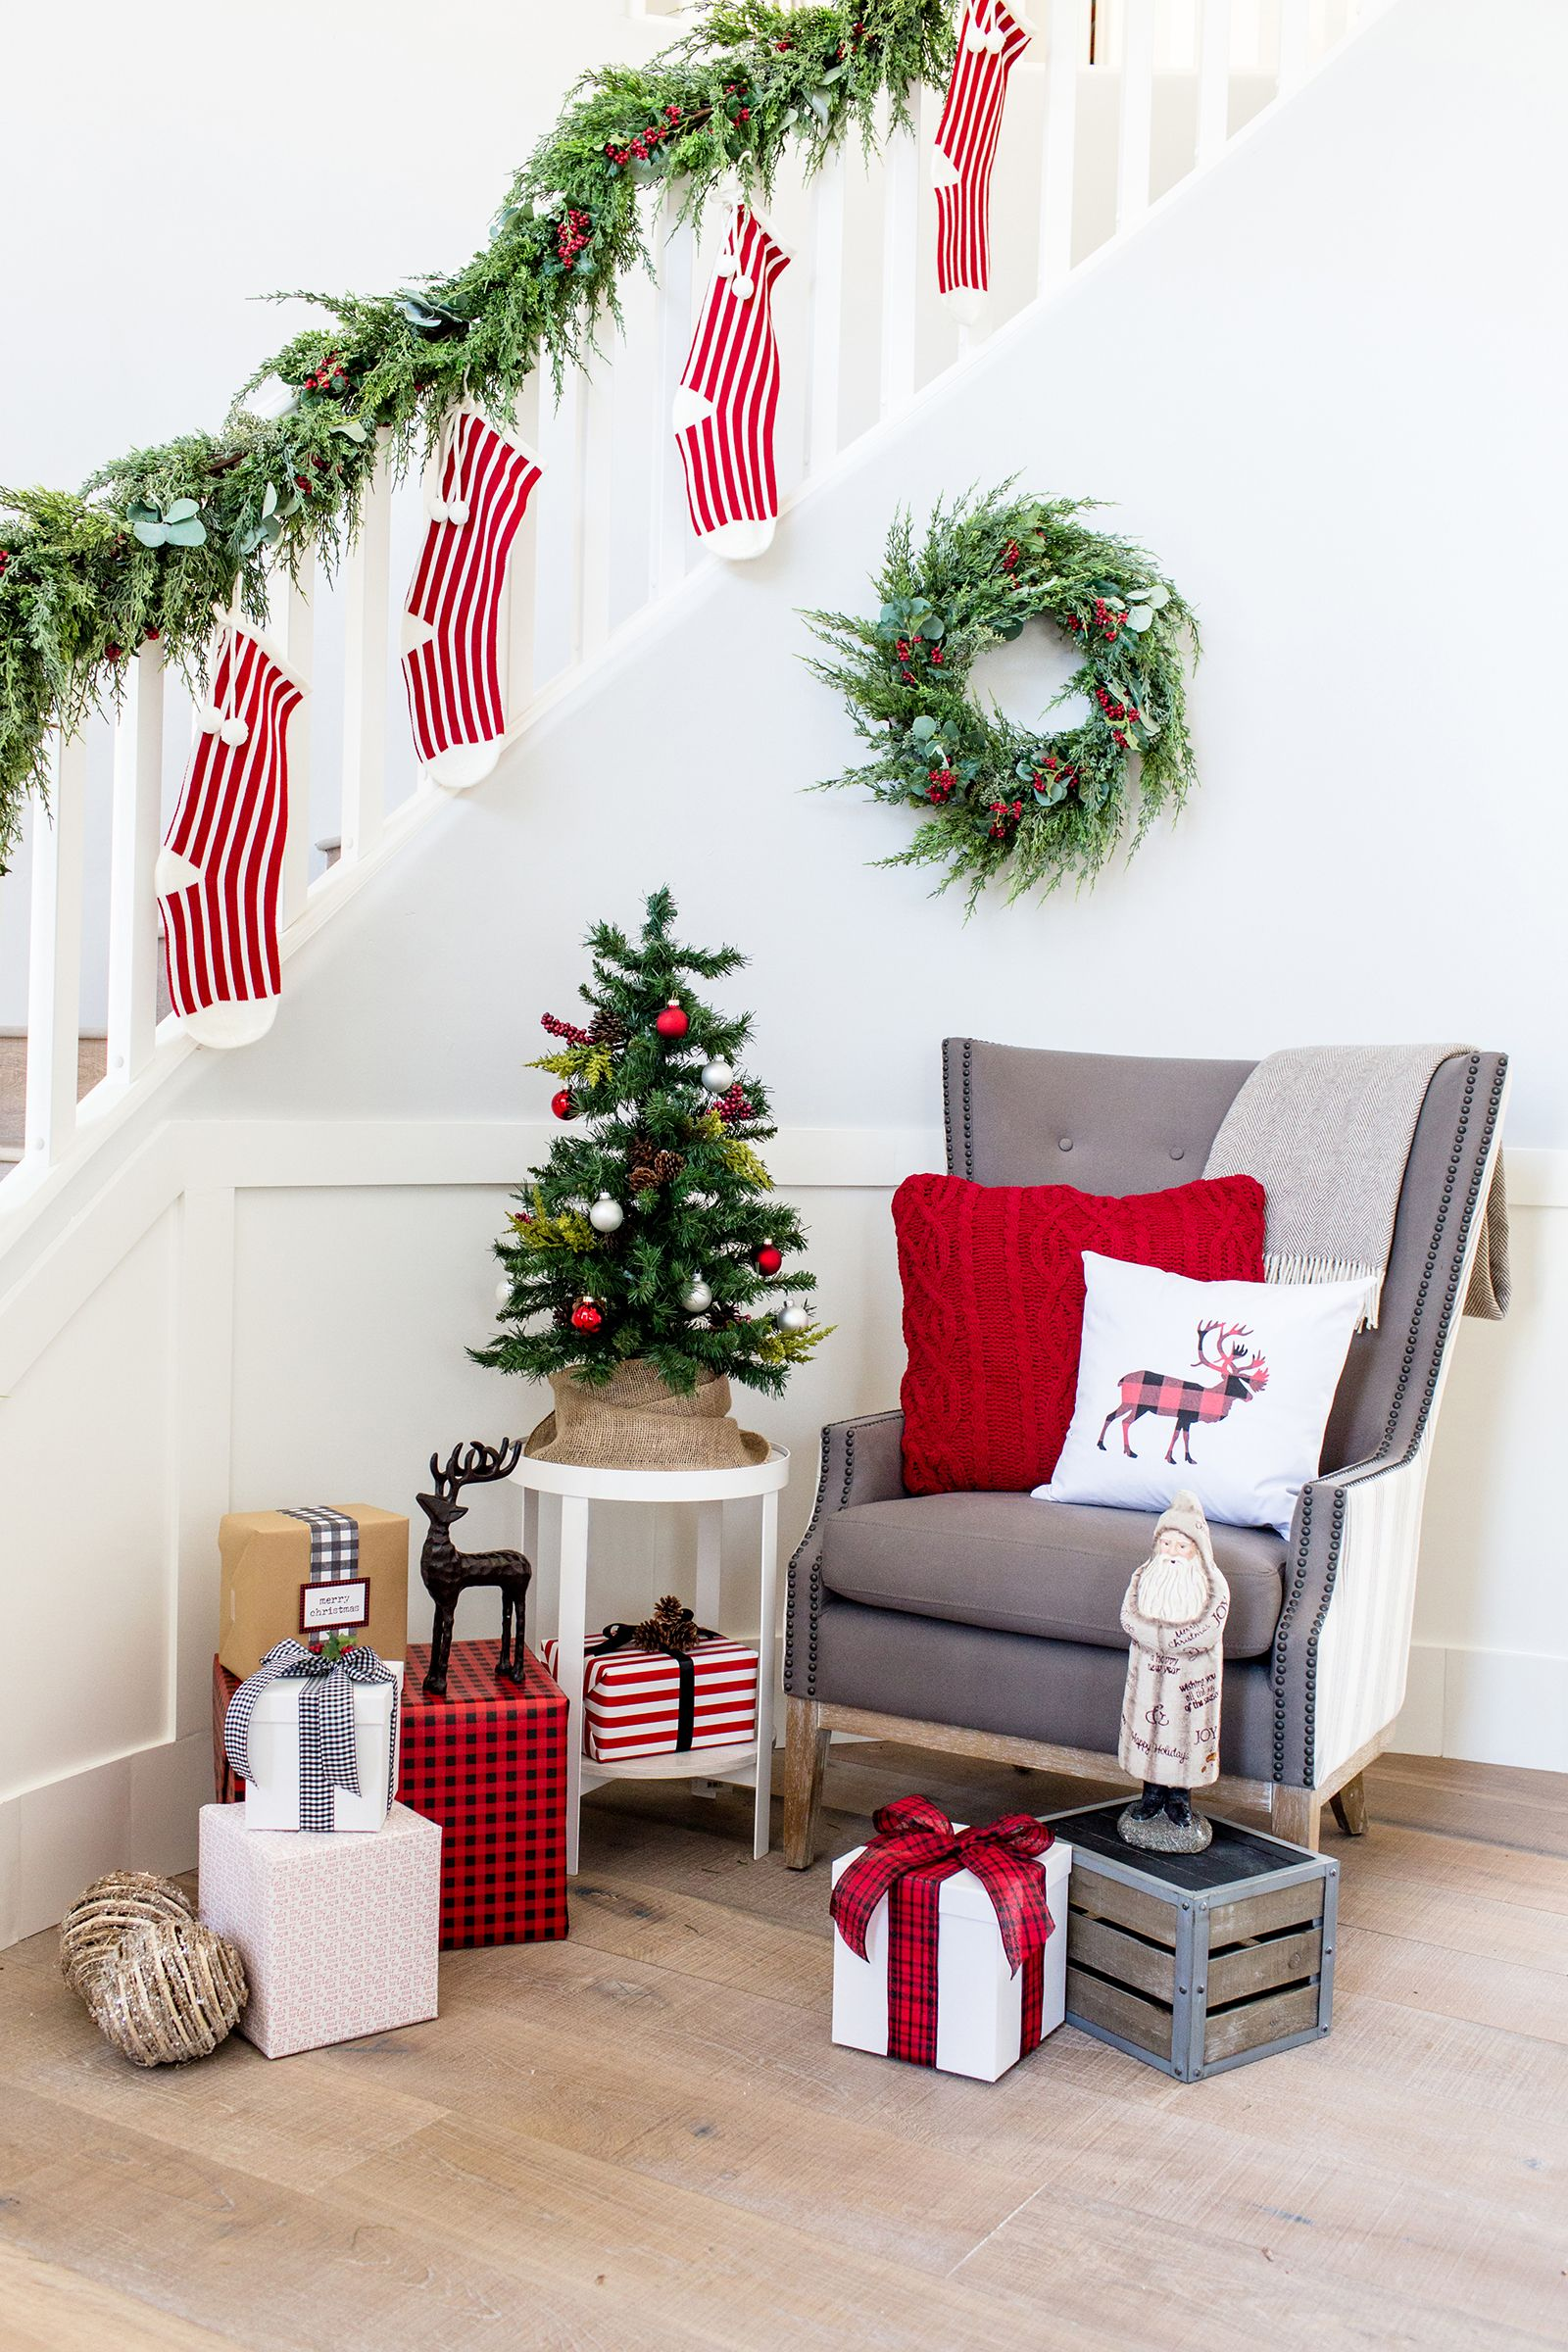 22 Christmas Decorating Ideas To Steal From Joanna Gaines Joanna